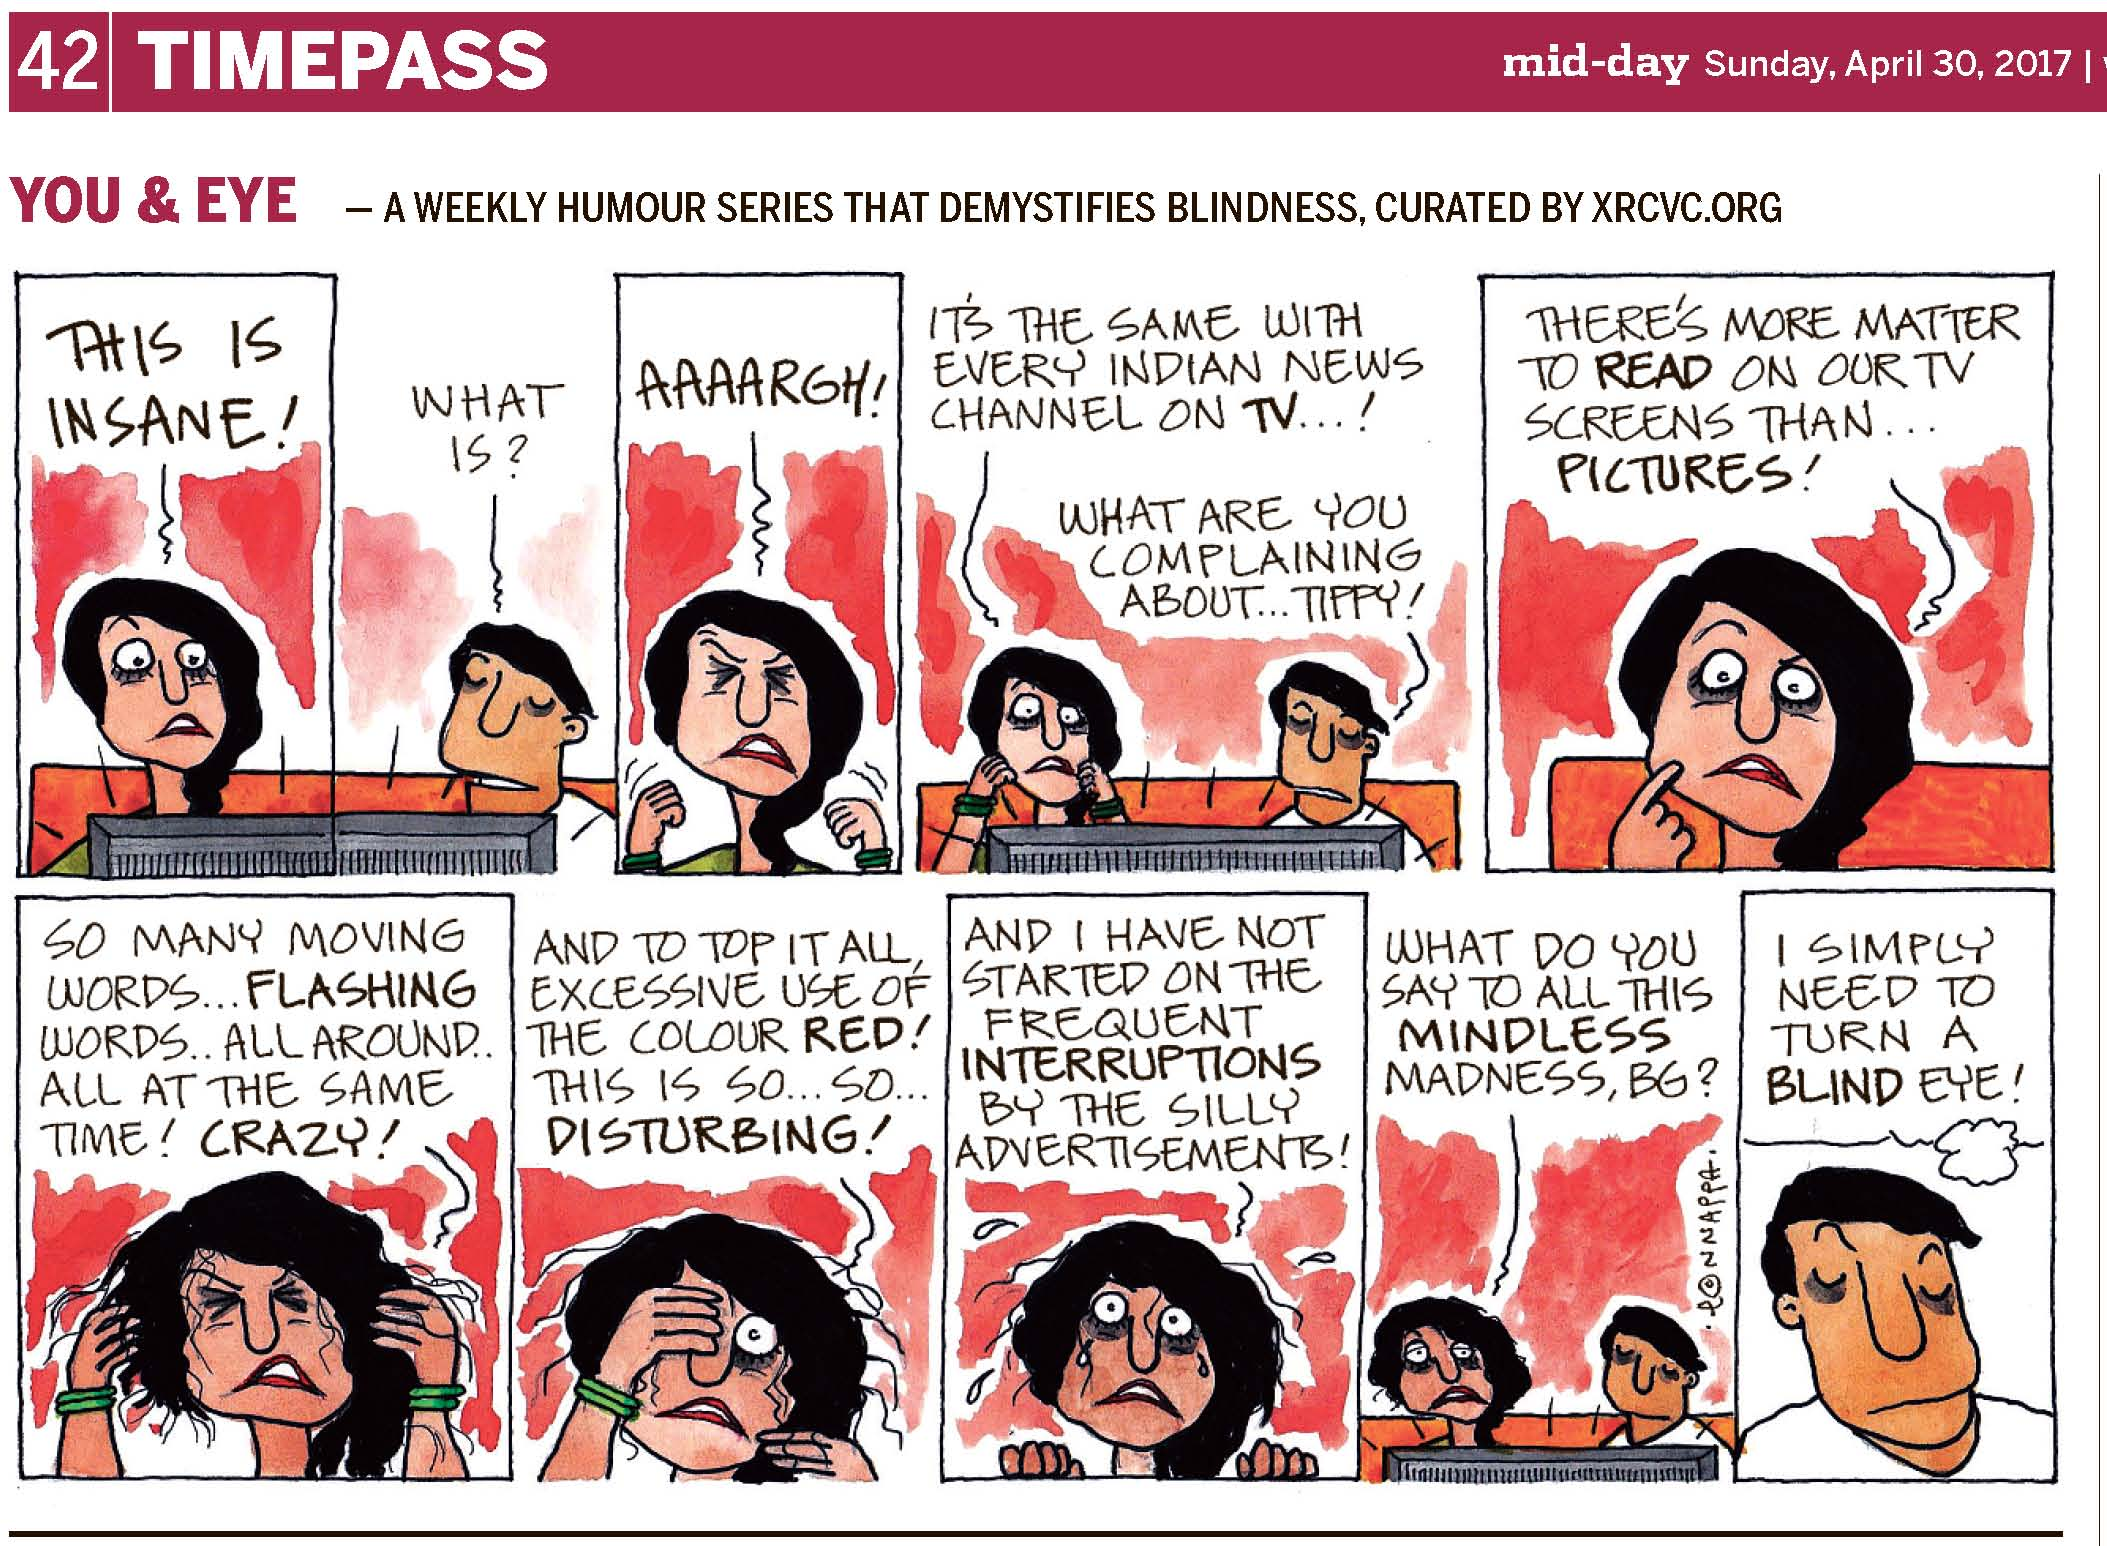 (top-left) 42 | TIMEPASS (top-right) mid-day Sunday, April 30, 2017 